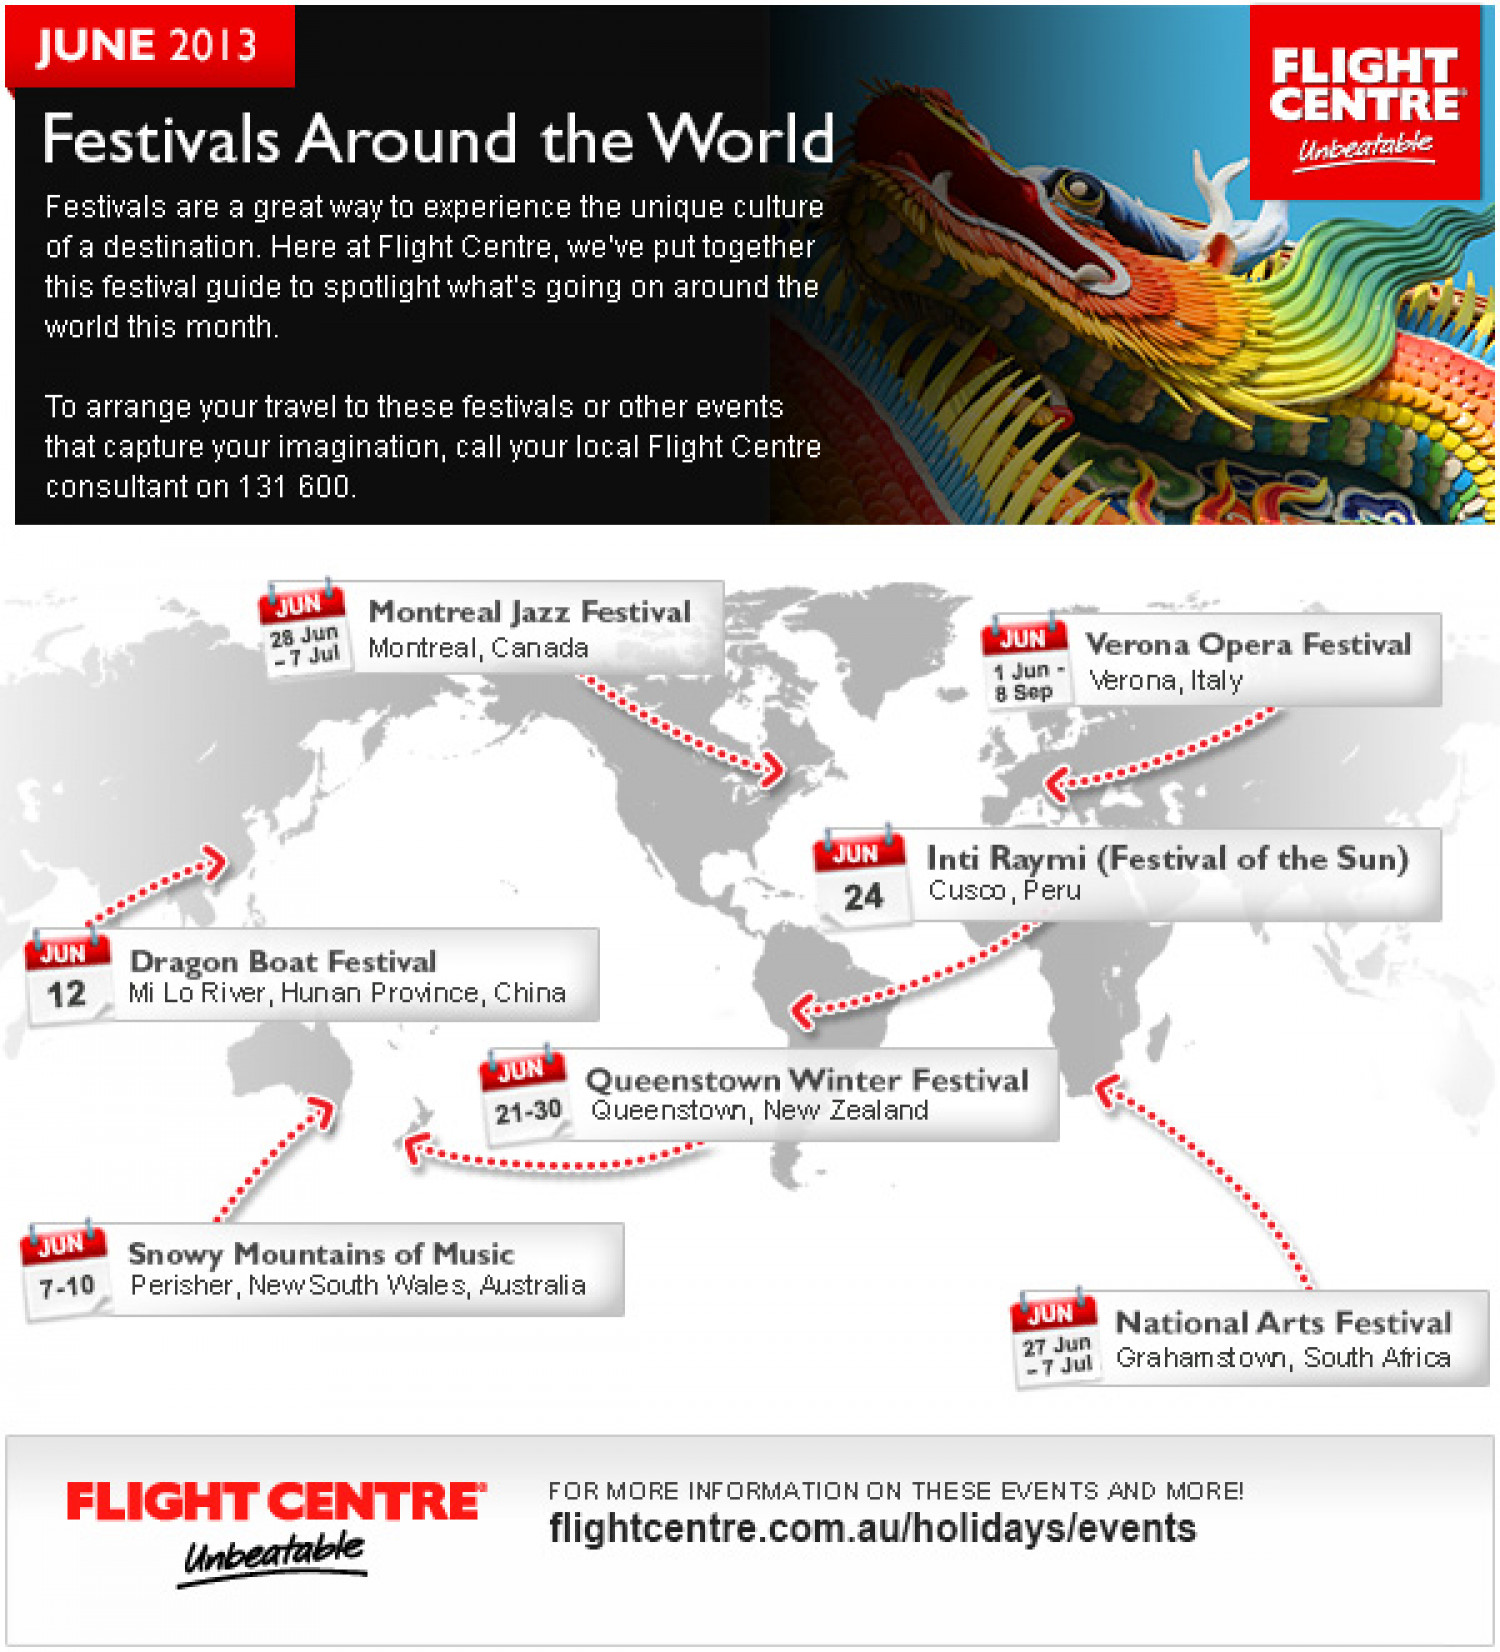 Festivals Around the World in June Infographic